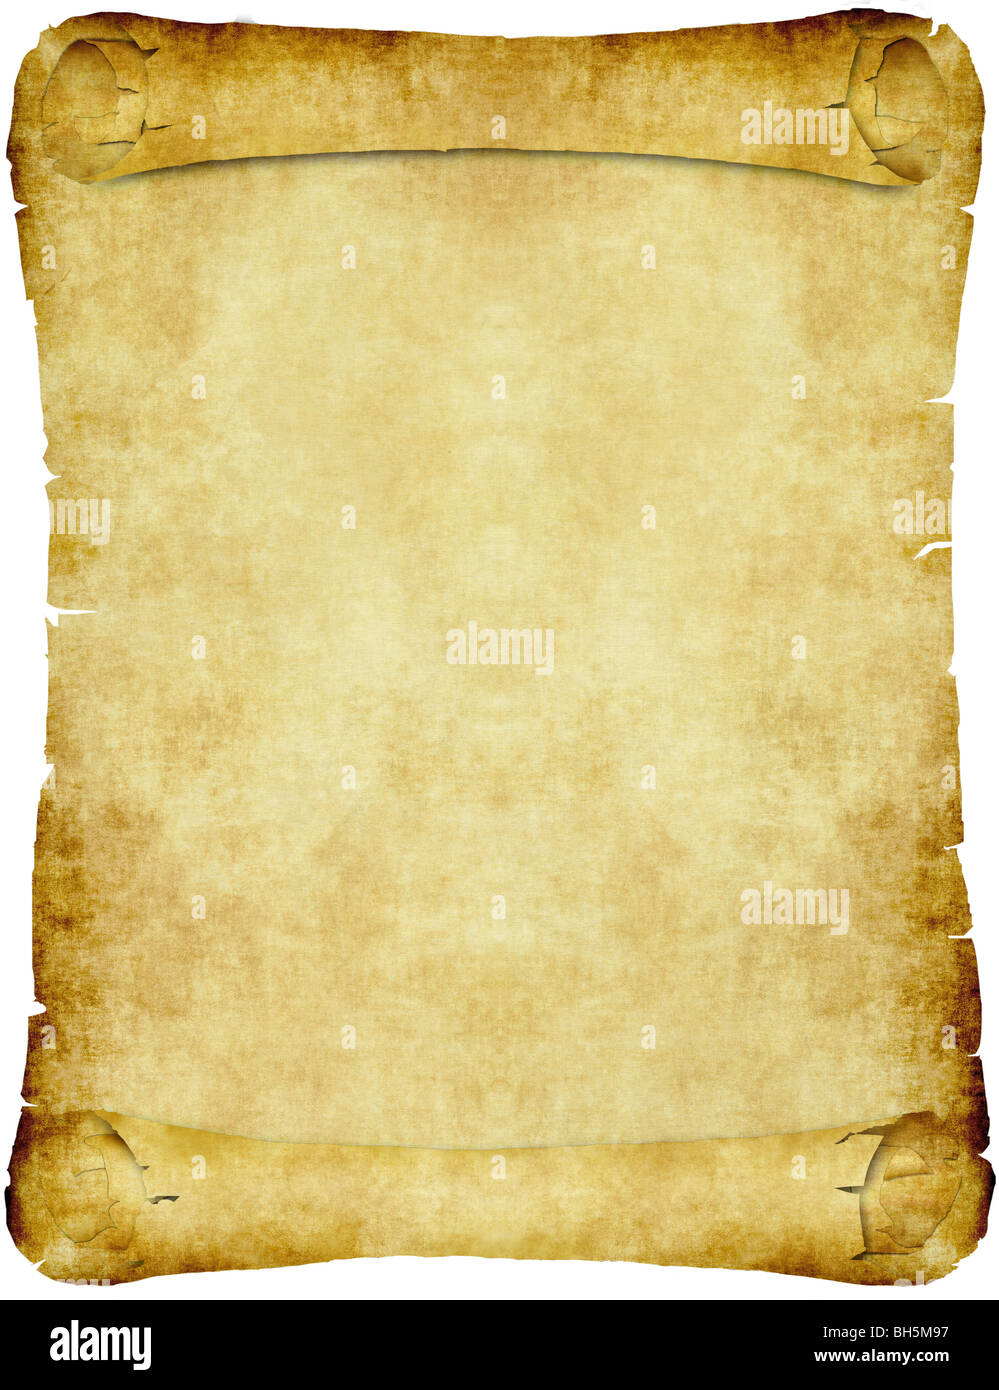 old parchment scroll stock photo 27785219 alamy